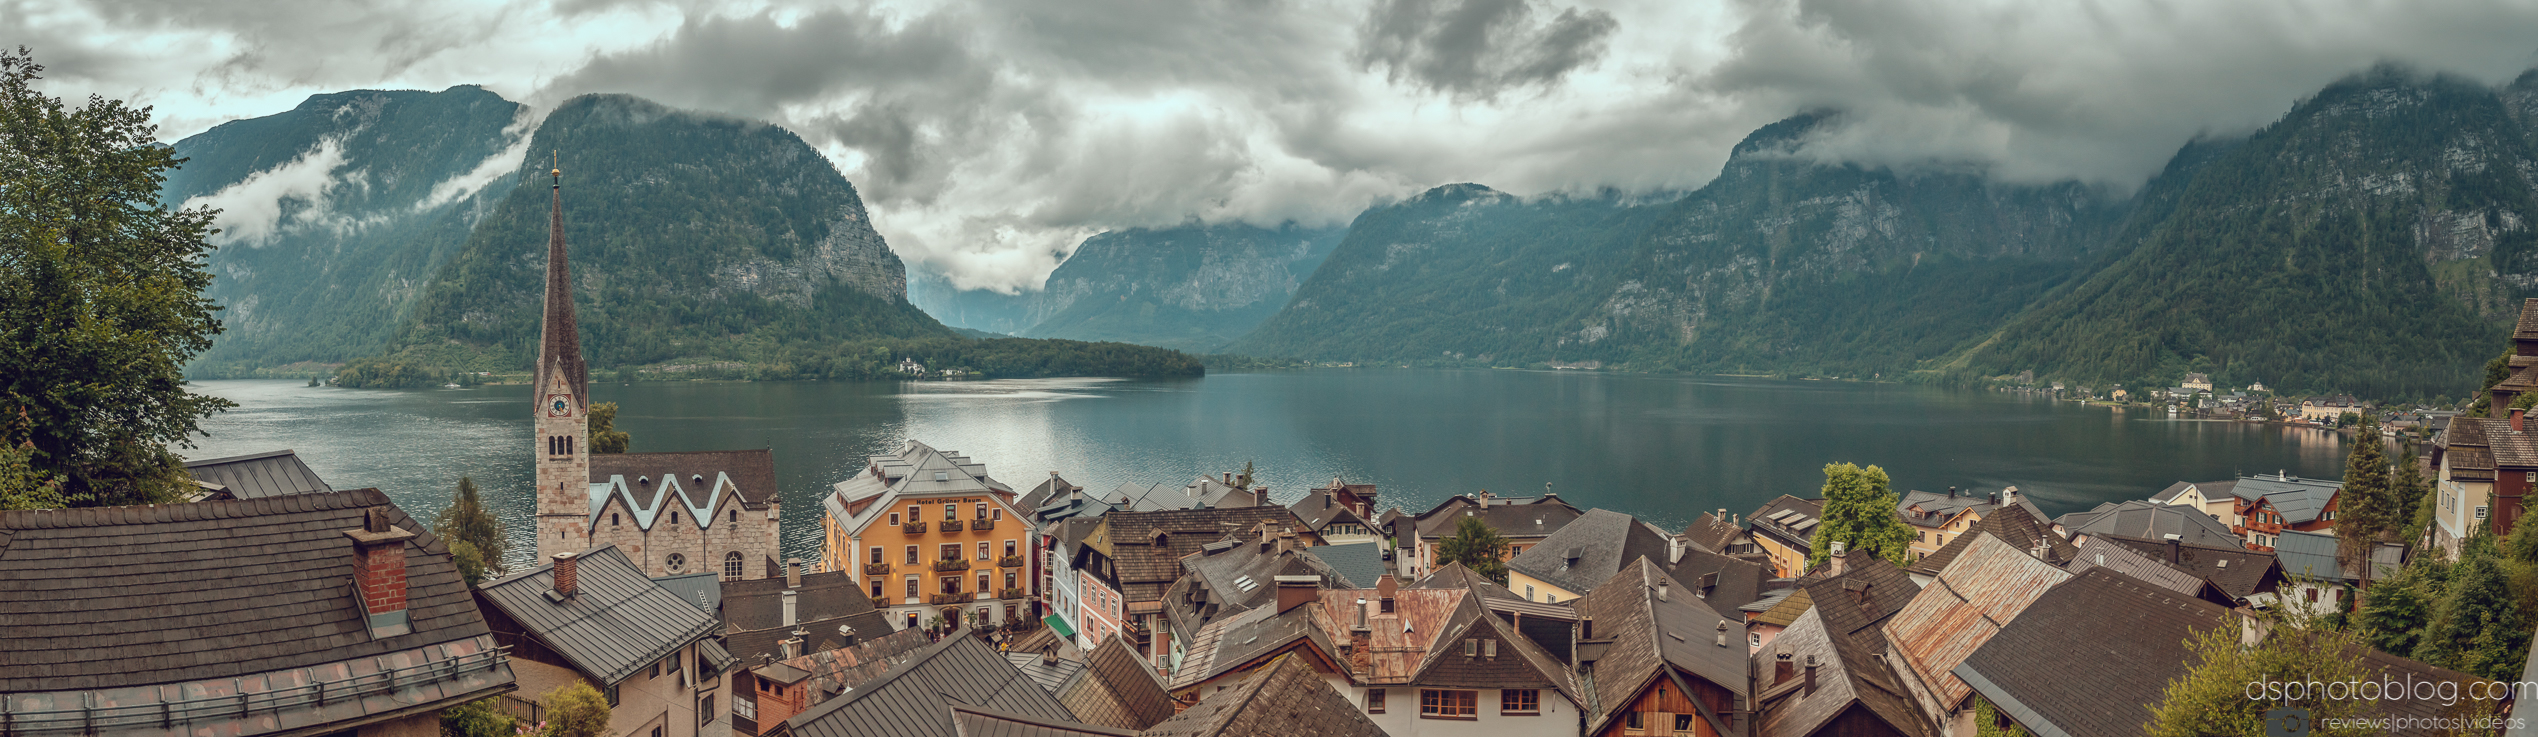 Hallstatt in July 2016 + VLOG